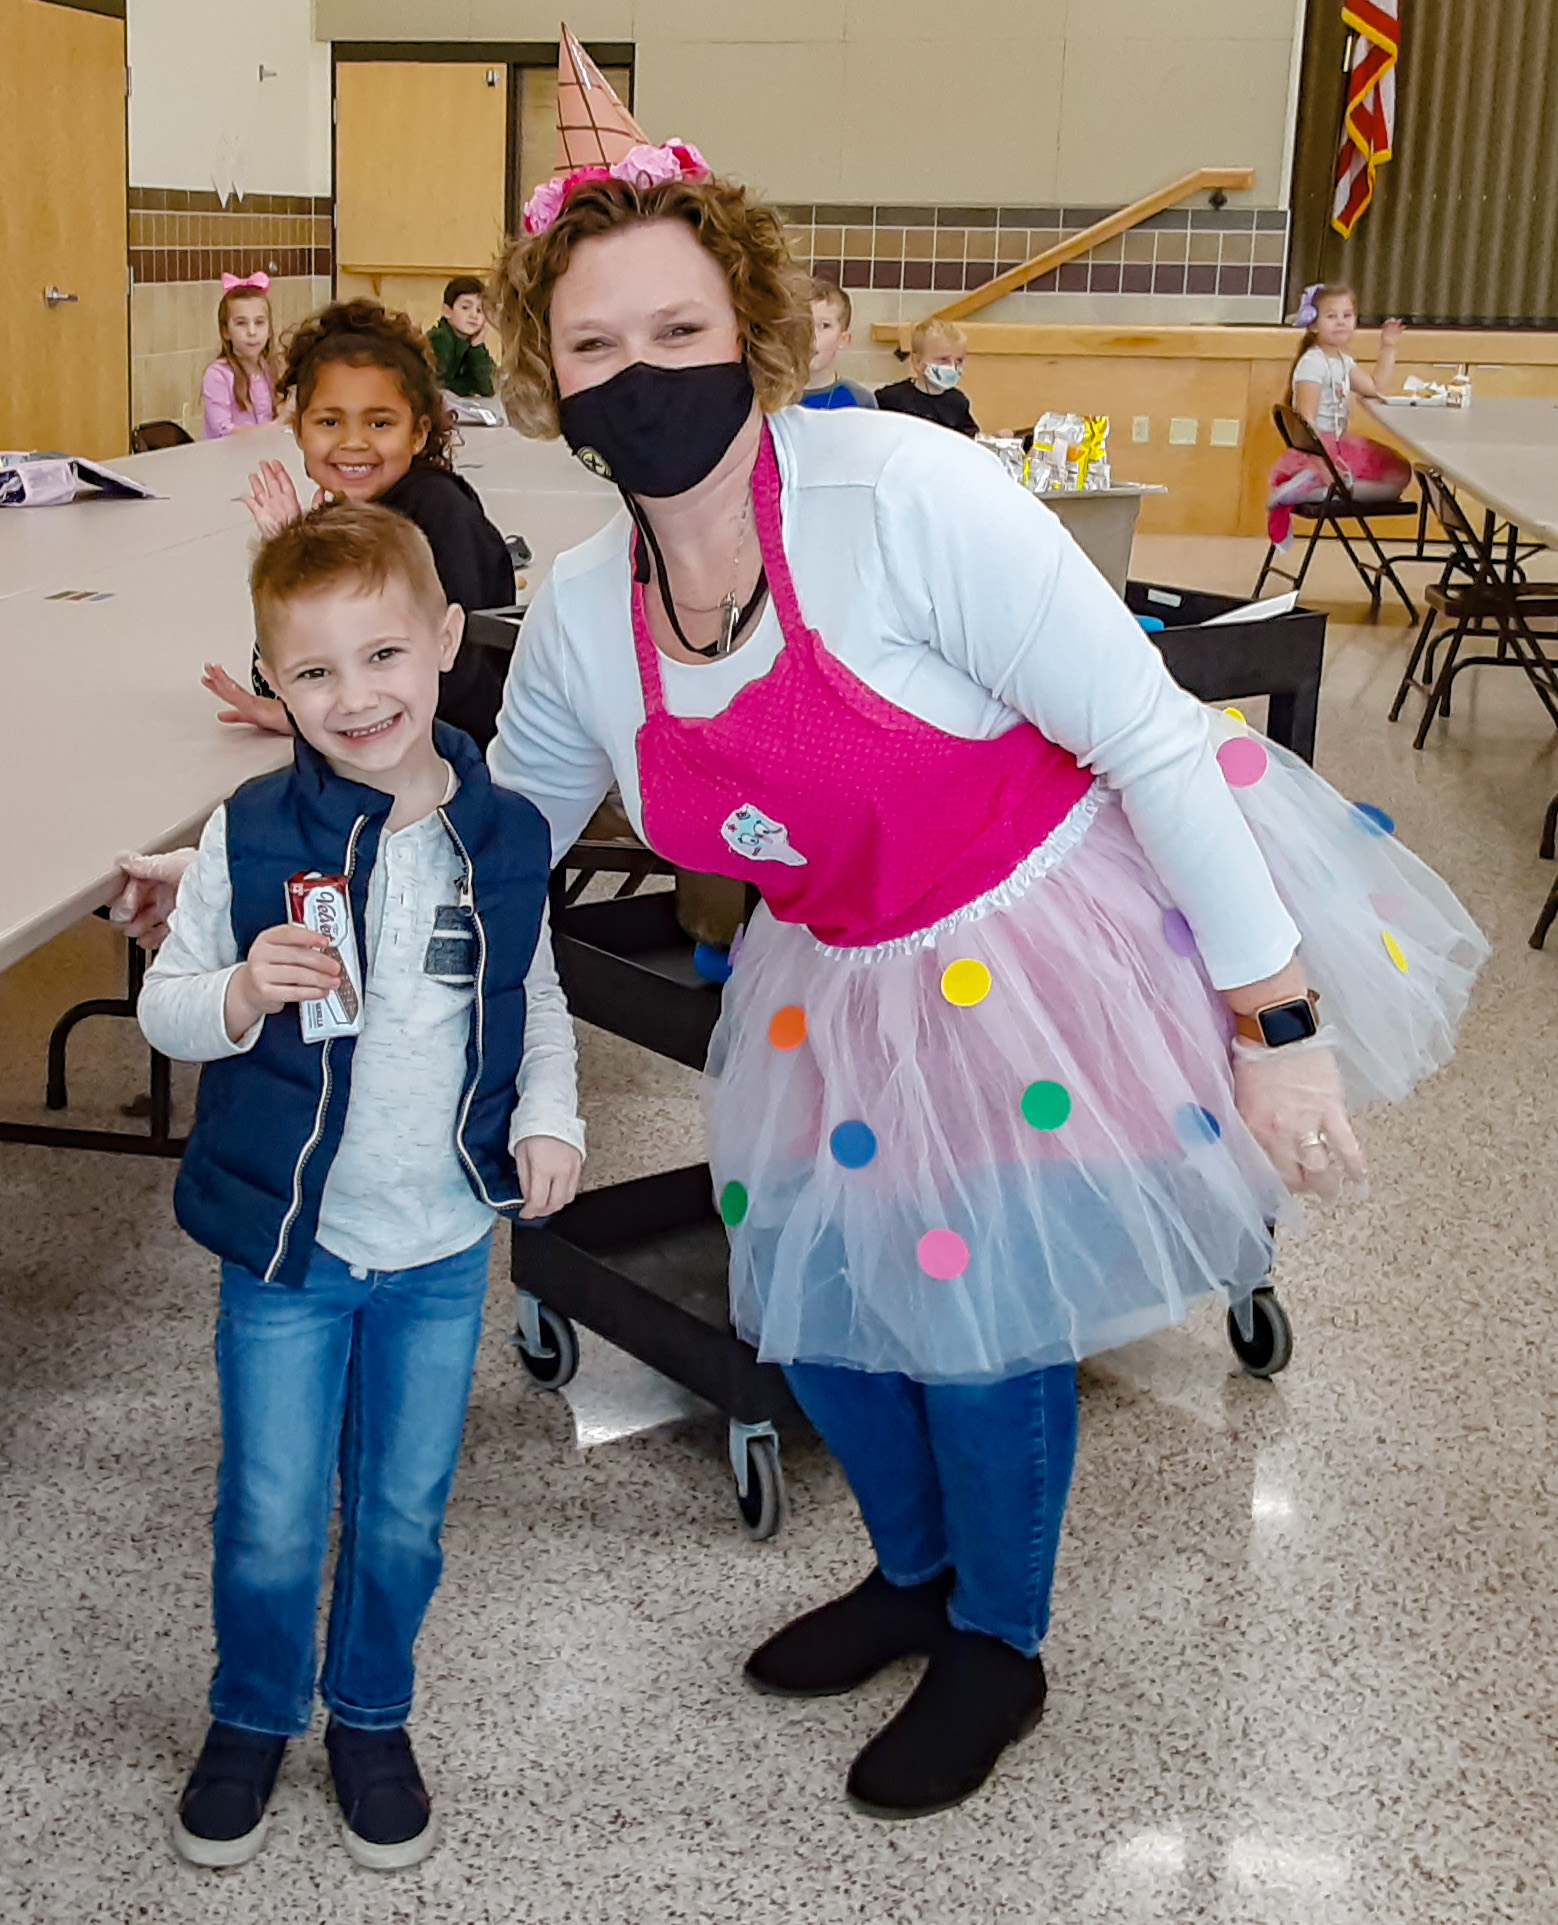 During the Jan. 31-Feb. 6 celebration of National Catholic Schools Week, Good Shepherd School Principal Kristen Girten passed out ice cream to all the students during lunch to thank them for a fantastic school year. Submitted photo